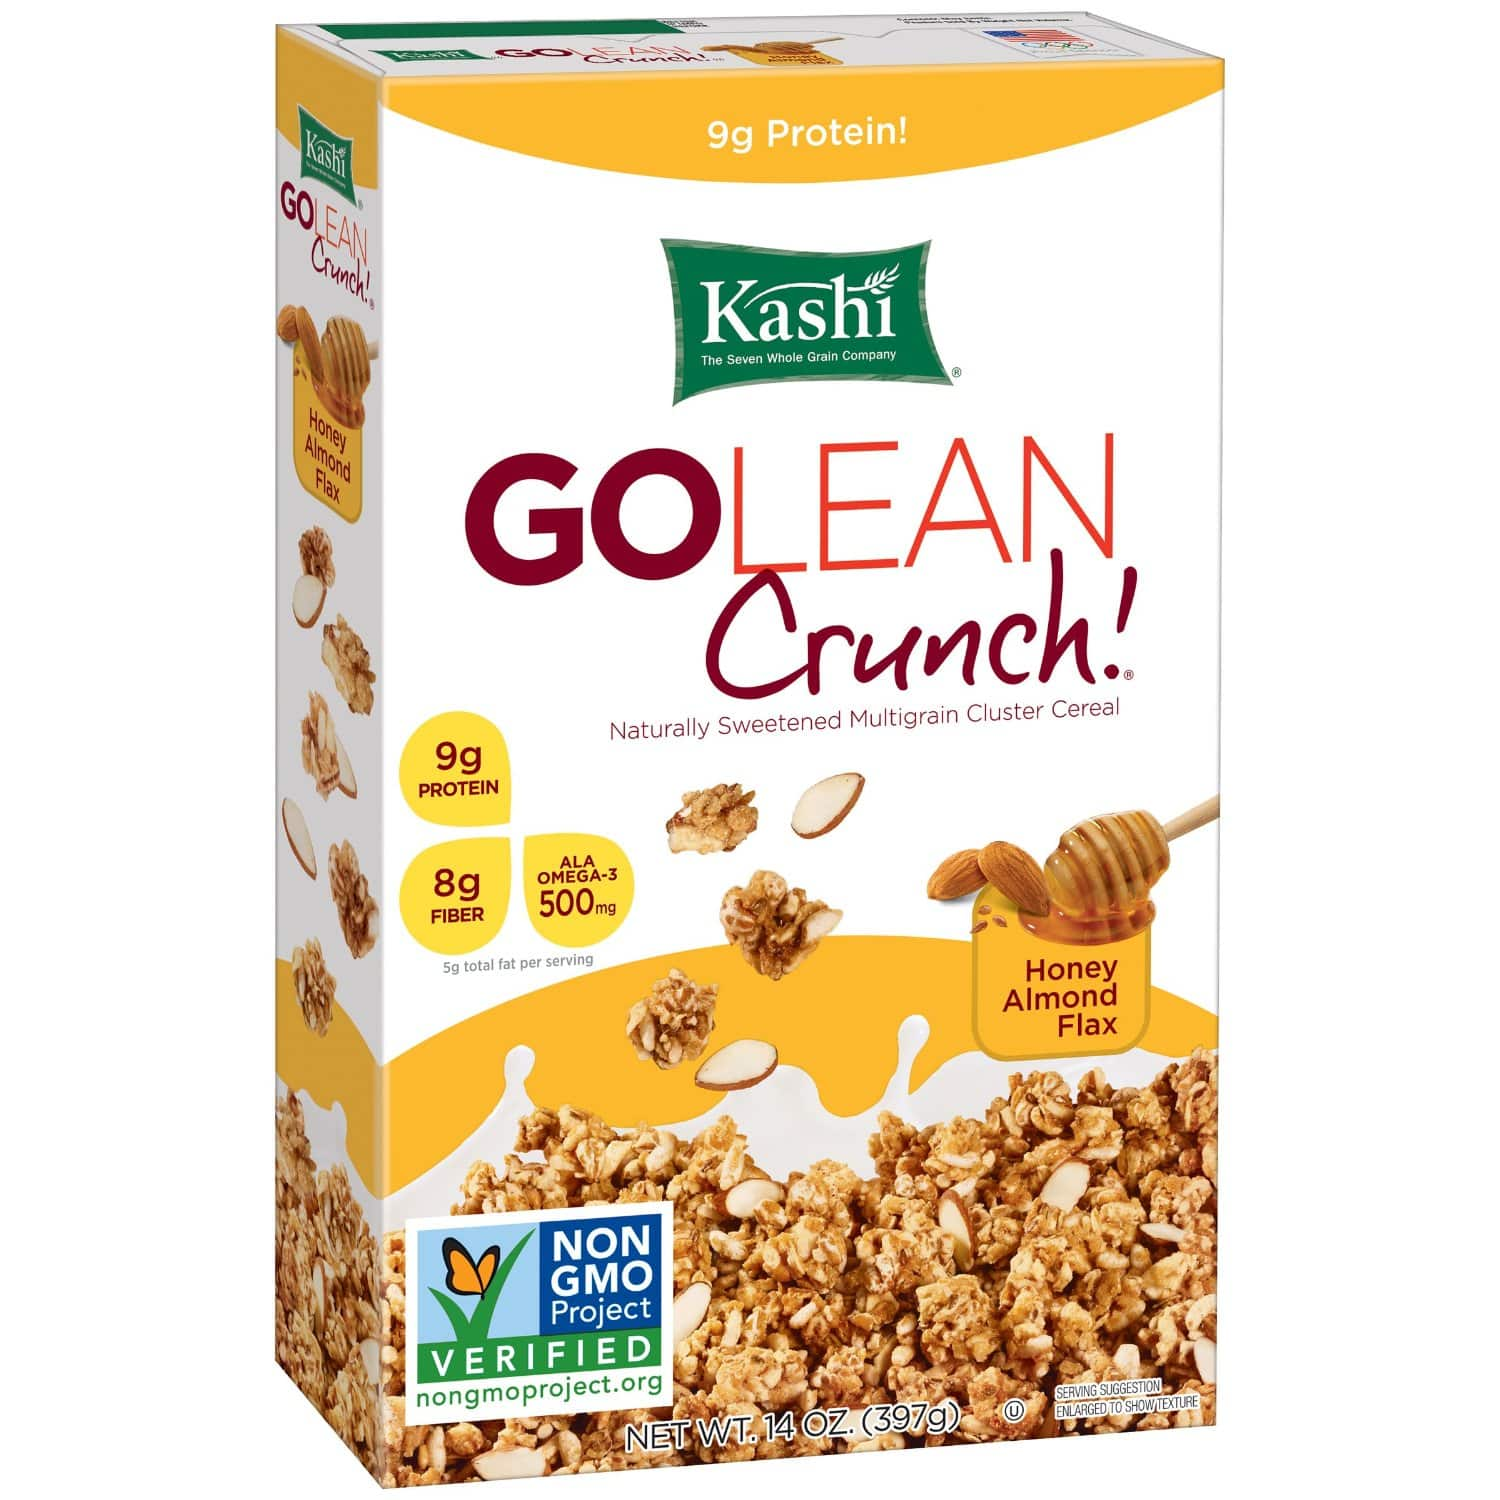 Kashi GOLEAN Crunch! Cereal, Honey Almond Flax, 14-Ounce Boxes (Pack of 4) $2.30 or less w/subscribe and save @Amazon